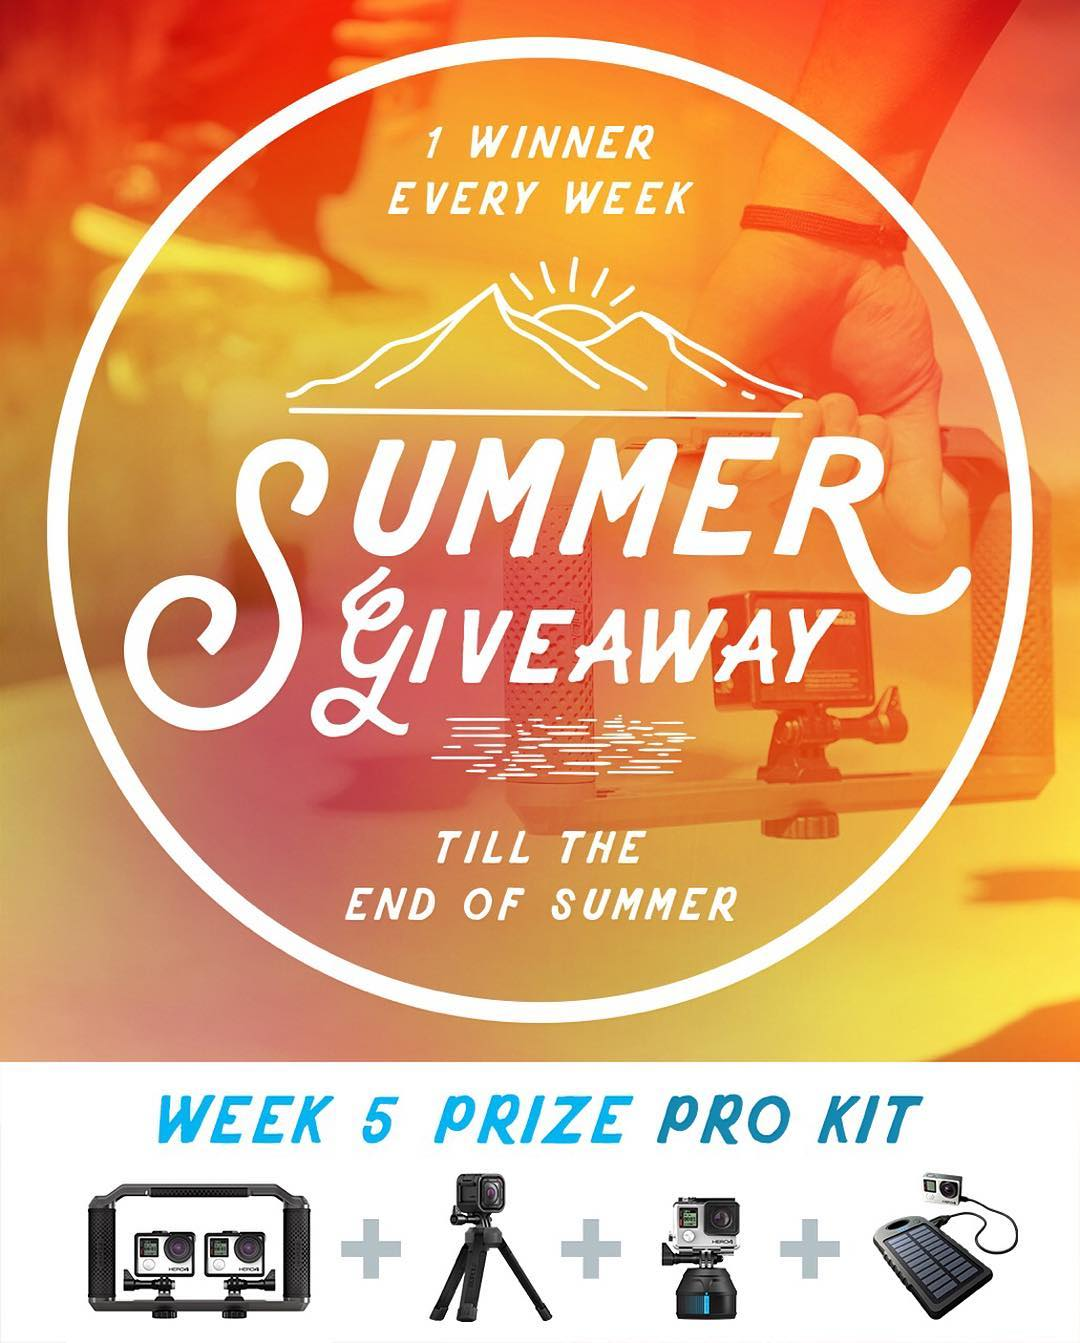 Congrats to week 4 winner, Gerardo Chamoso from Valdemorillo, Spain. GoPole Summer Giveaway week 5 prize - Pro Kit. Enter daily to increase your chances. No purchase necessary, enter once or enter every day to increase your changes of winning. Enter...